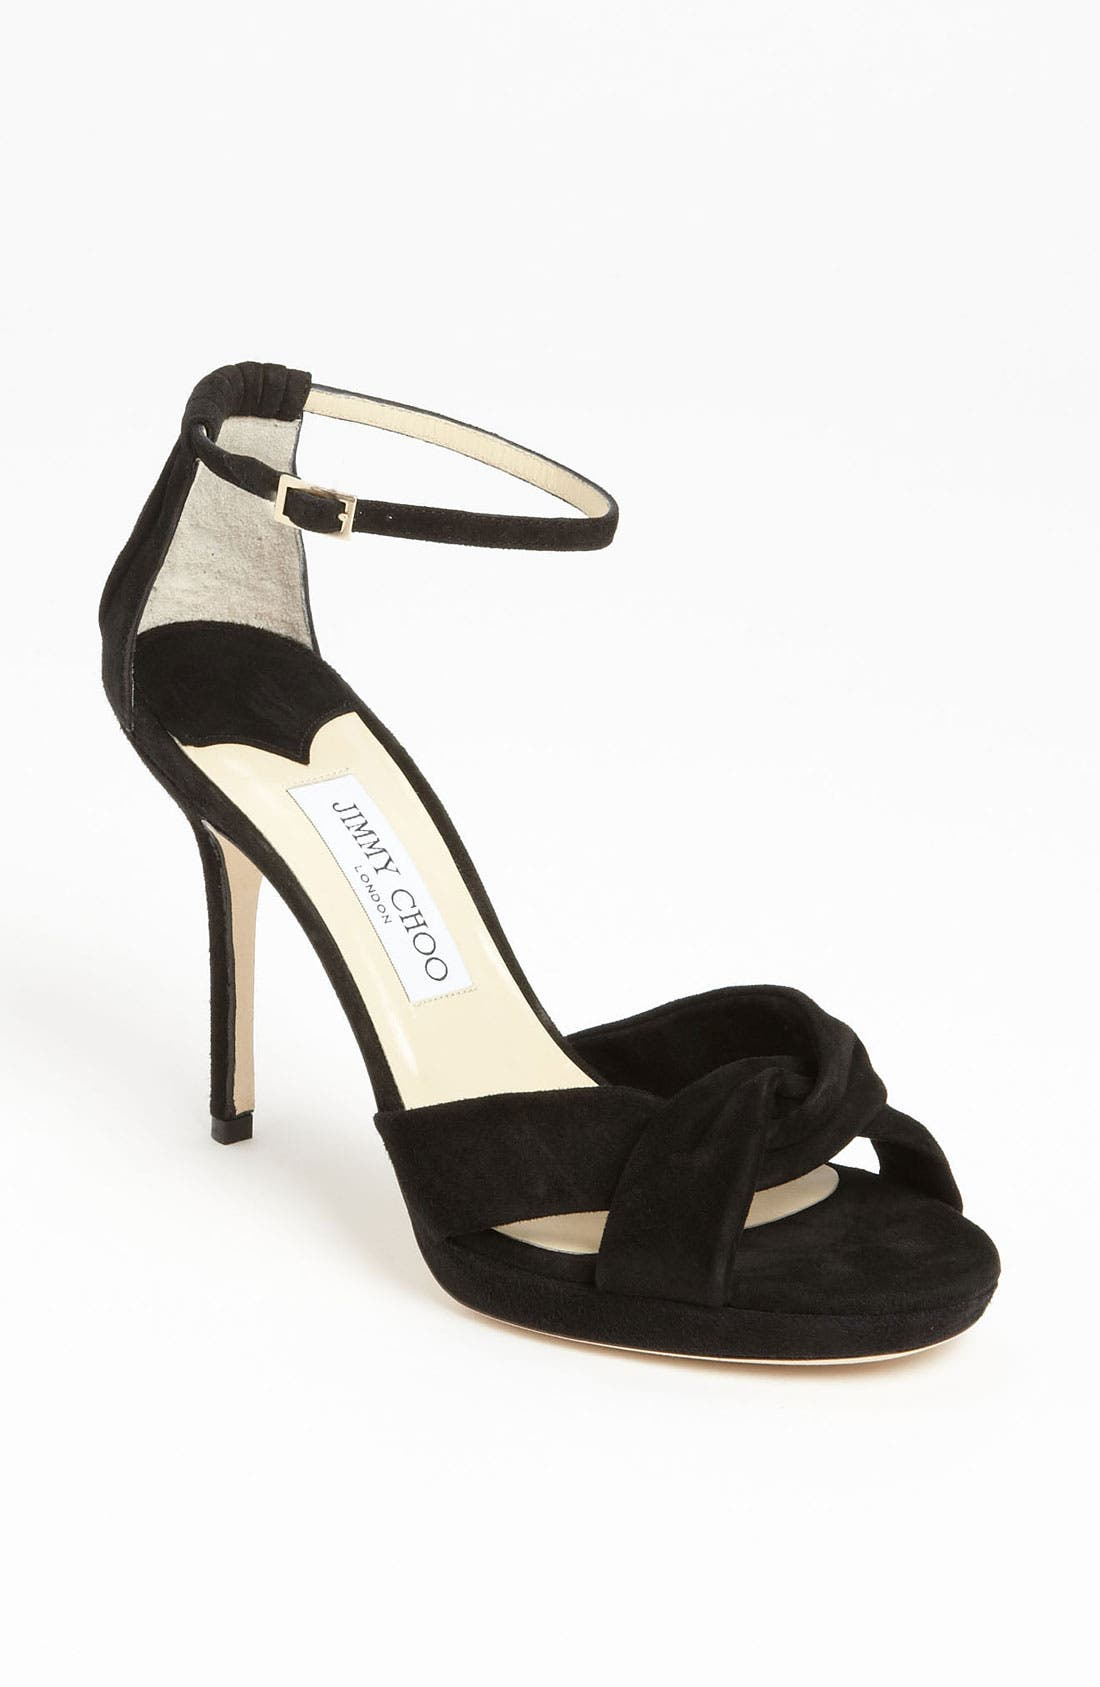 JIMMY CHOO 'Marion' Sandal, Main, color, 001